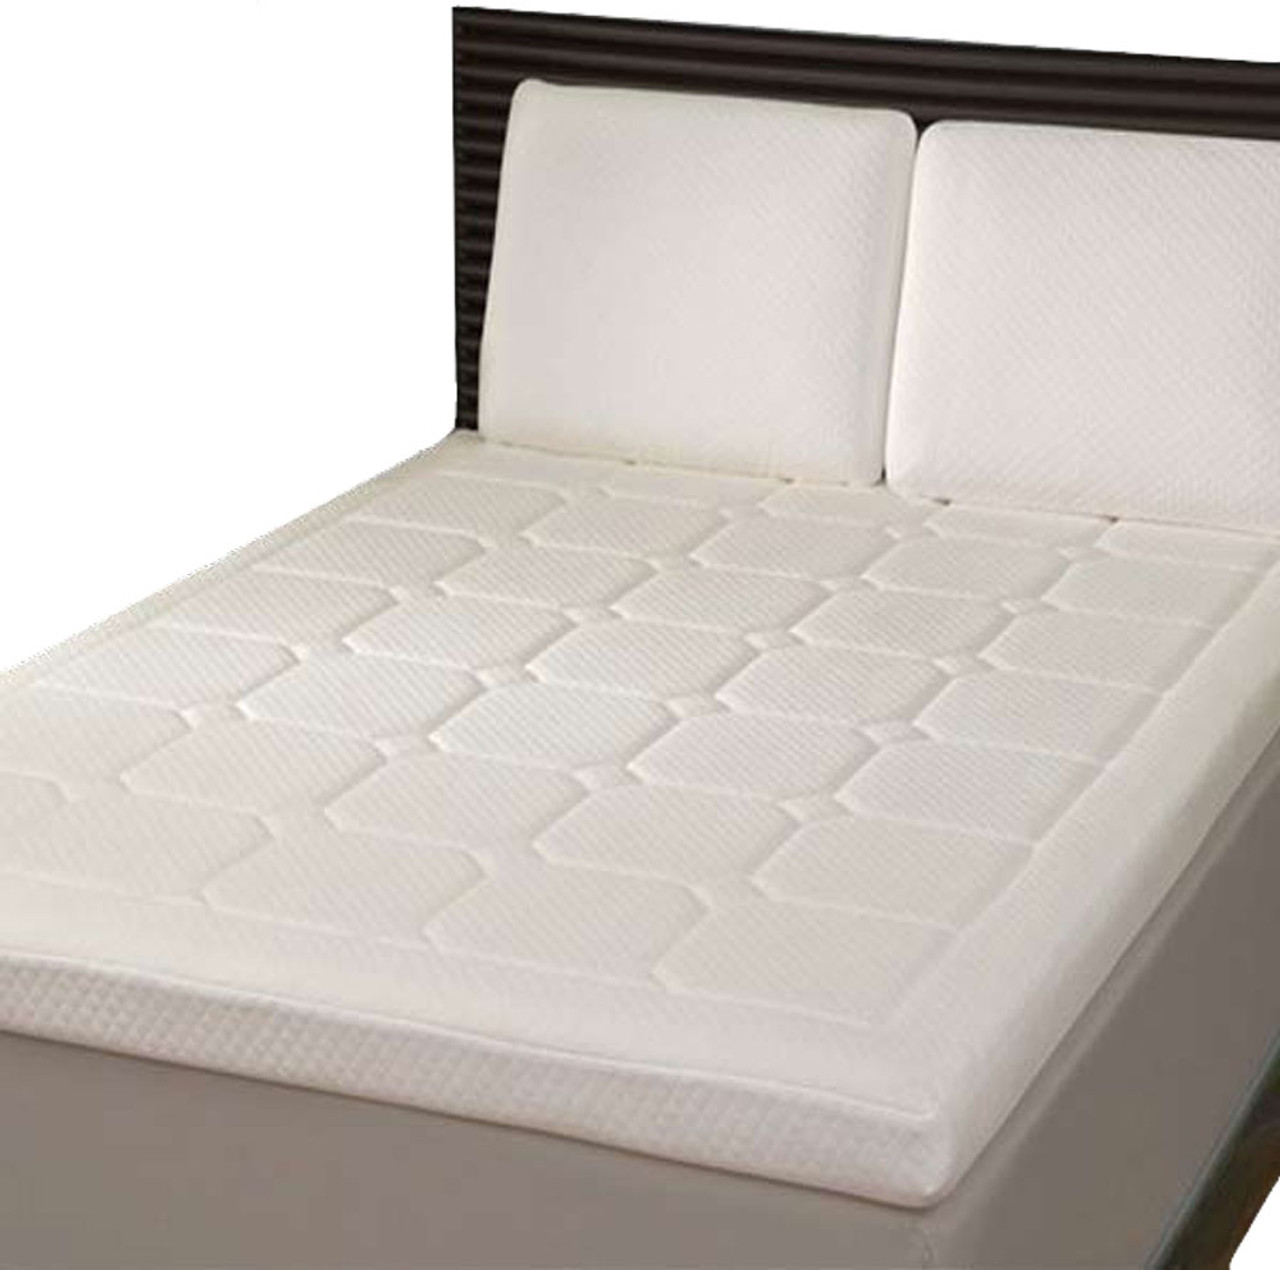 King Single Senso Classic Enhancergrand Luxury Quilted Memory Foam Mattress Topper Sce5ks My Furniture Store Furniture And Bedding Super Store Australia